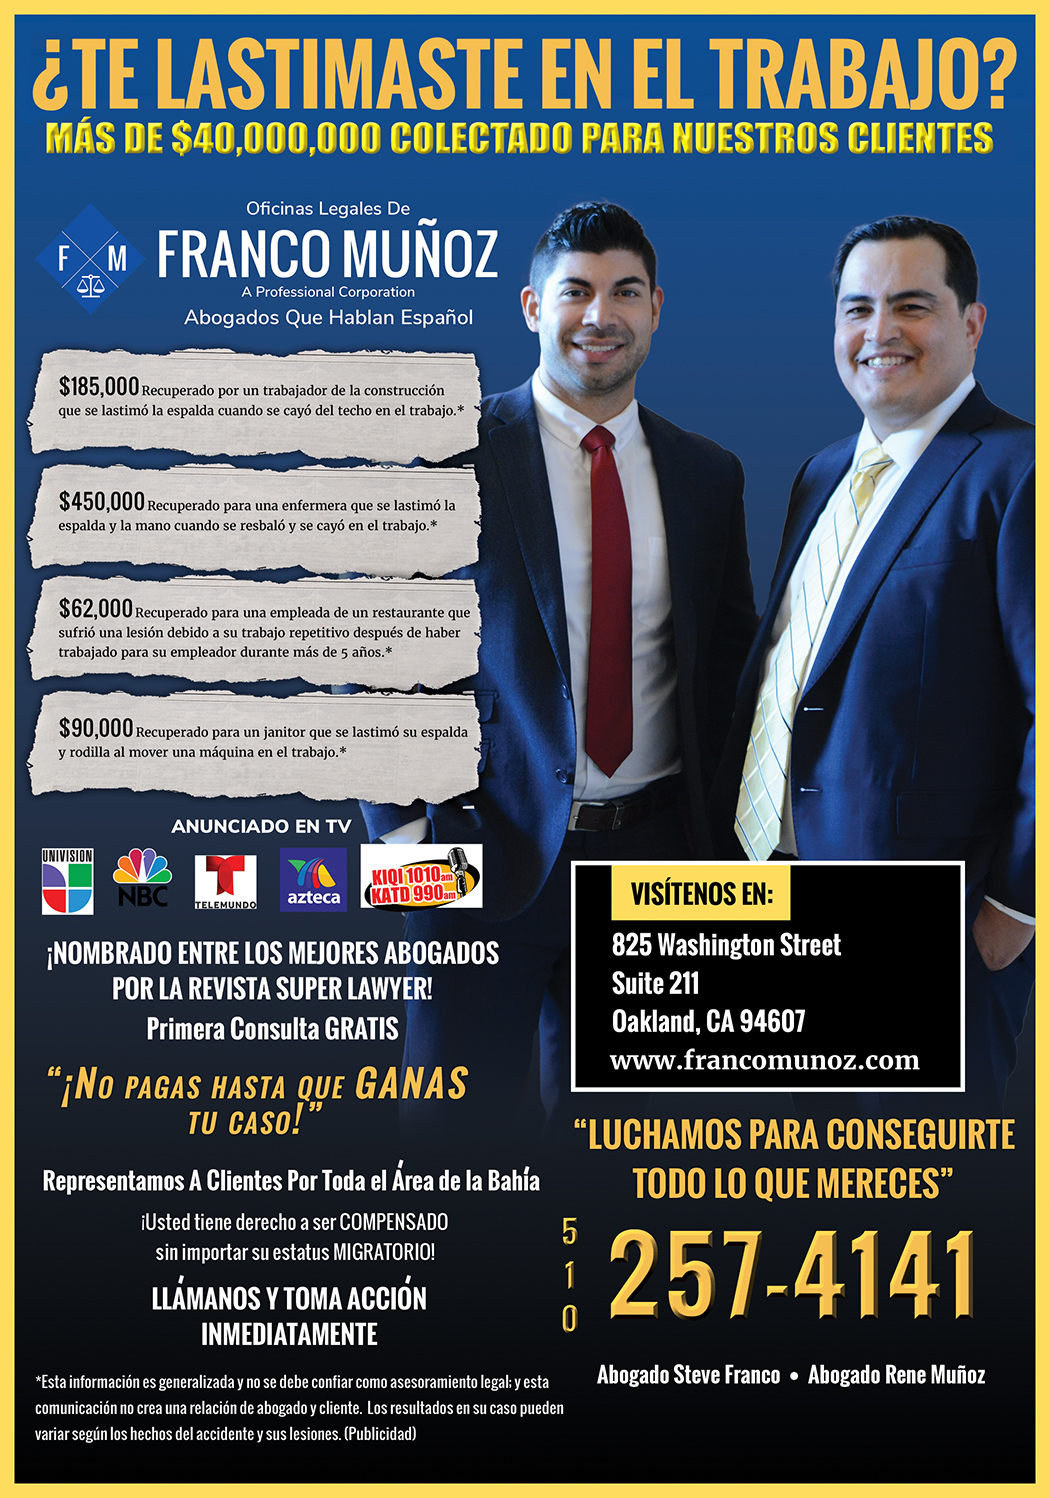 Franco Munoz - Law Office 1 Pag GLOSSY - feb 2018 copy.jpg